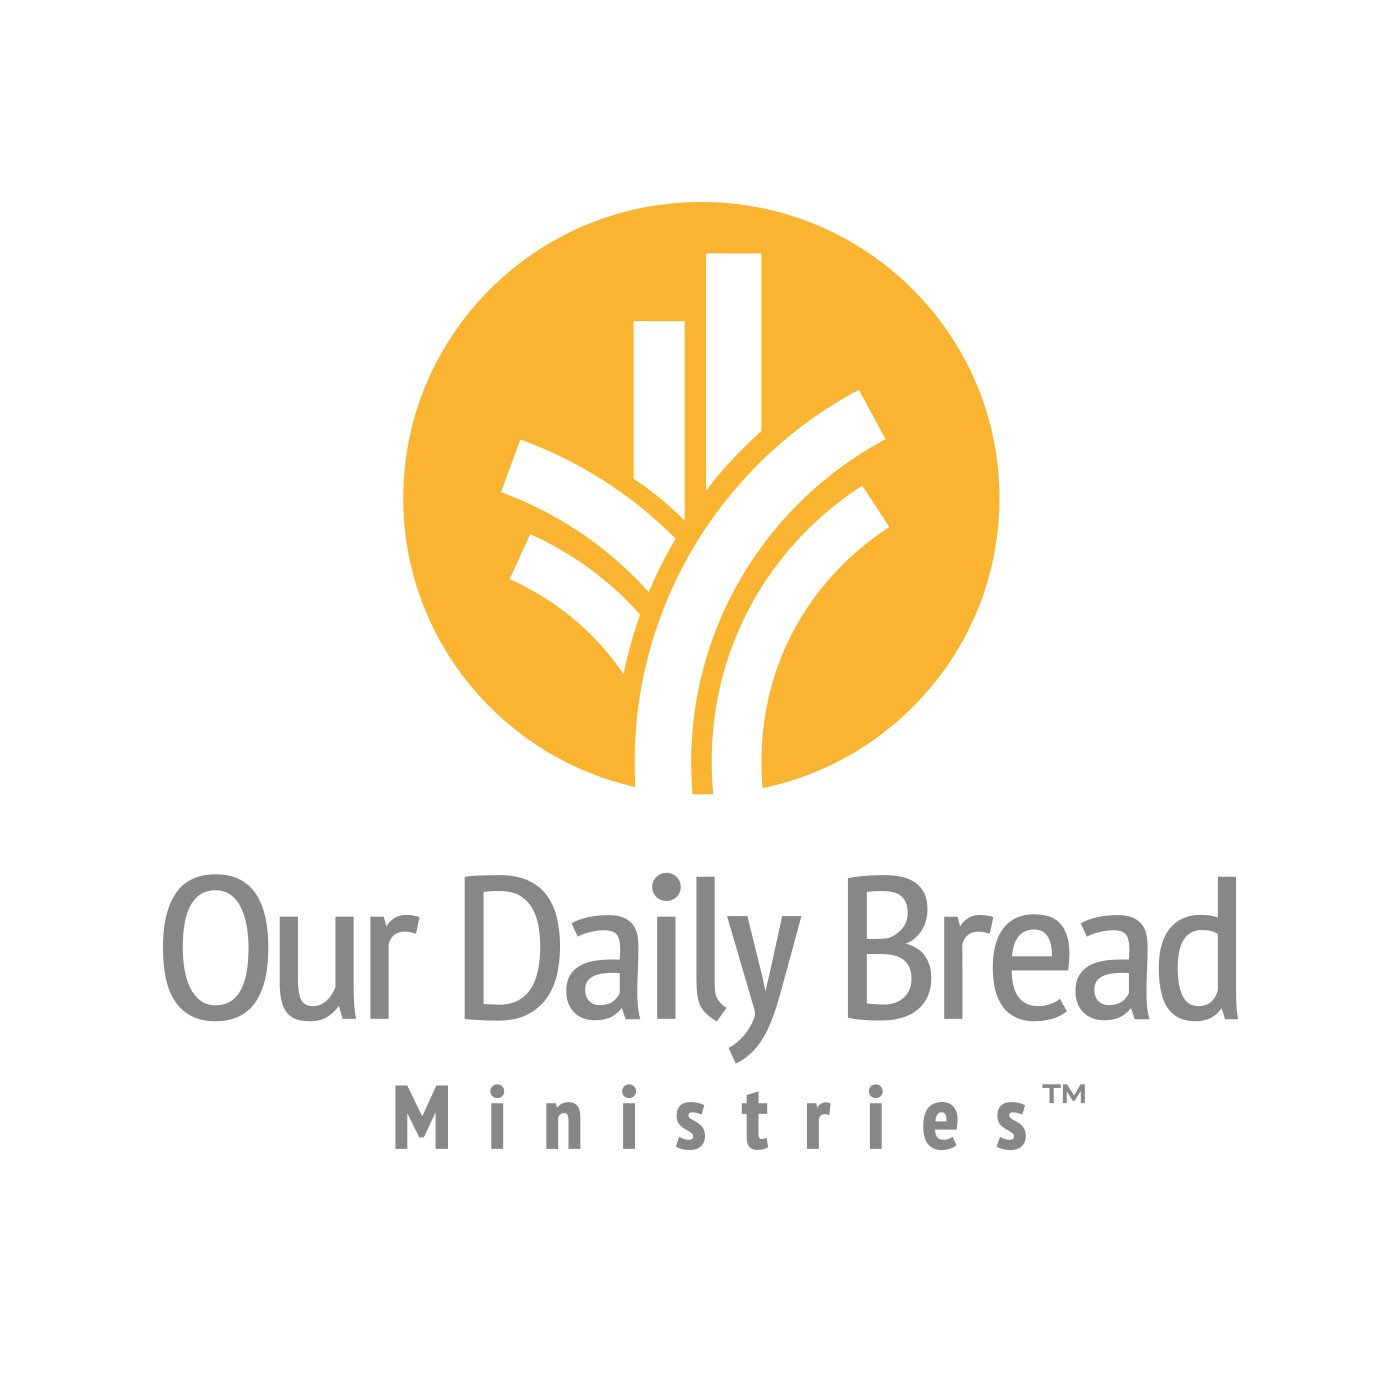 Our Daily Bread Wednesday 13th January 2021, Our Daily Bread Wednesday 13th January 2021 Devotional – What's Your Song?, Latest Nigeria News, Daily Devotionals & Celebrity Gossips - Chidispalace